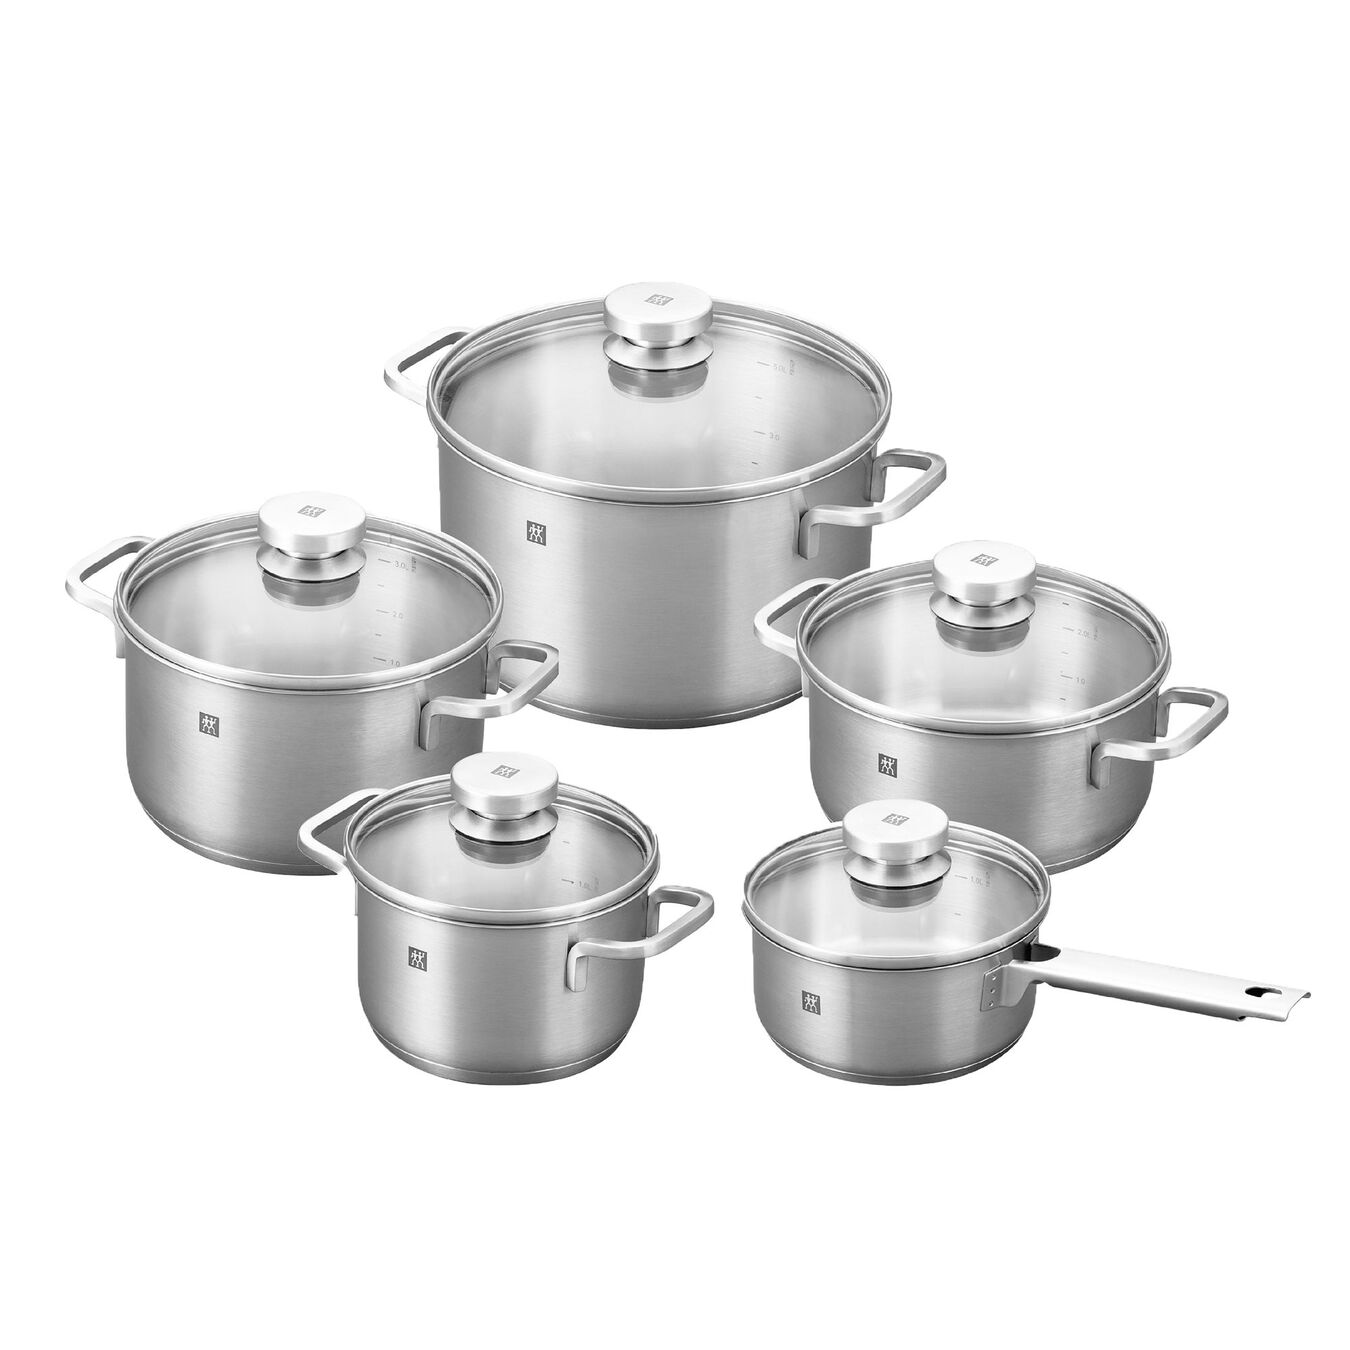 Set de casseroles, 10-pcs | round | 18/10 Stainless Steel,,large 1